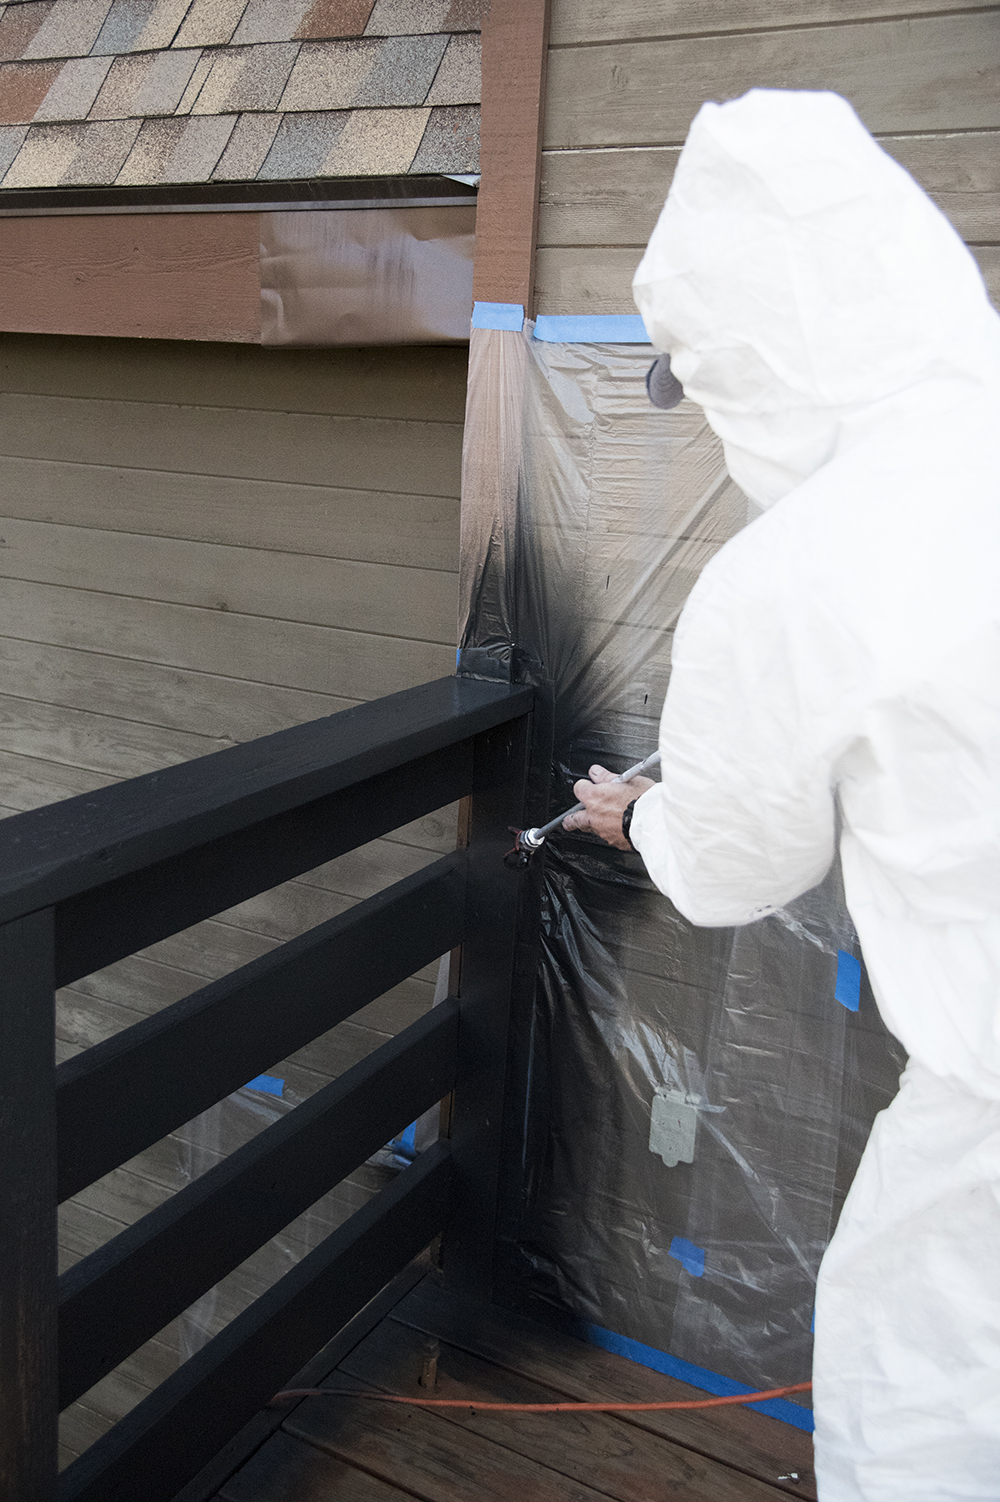 Exterior Deck Painting Tutorial - roomfortuesday.com